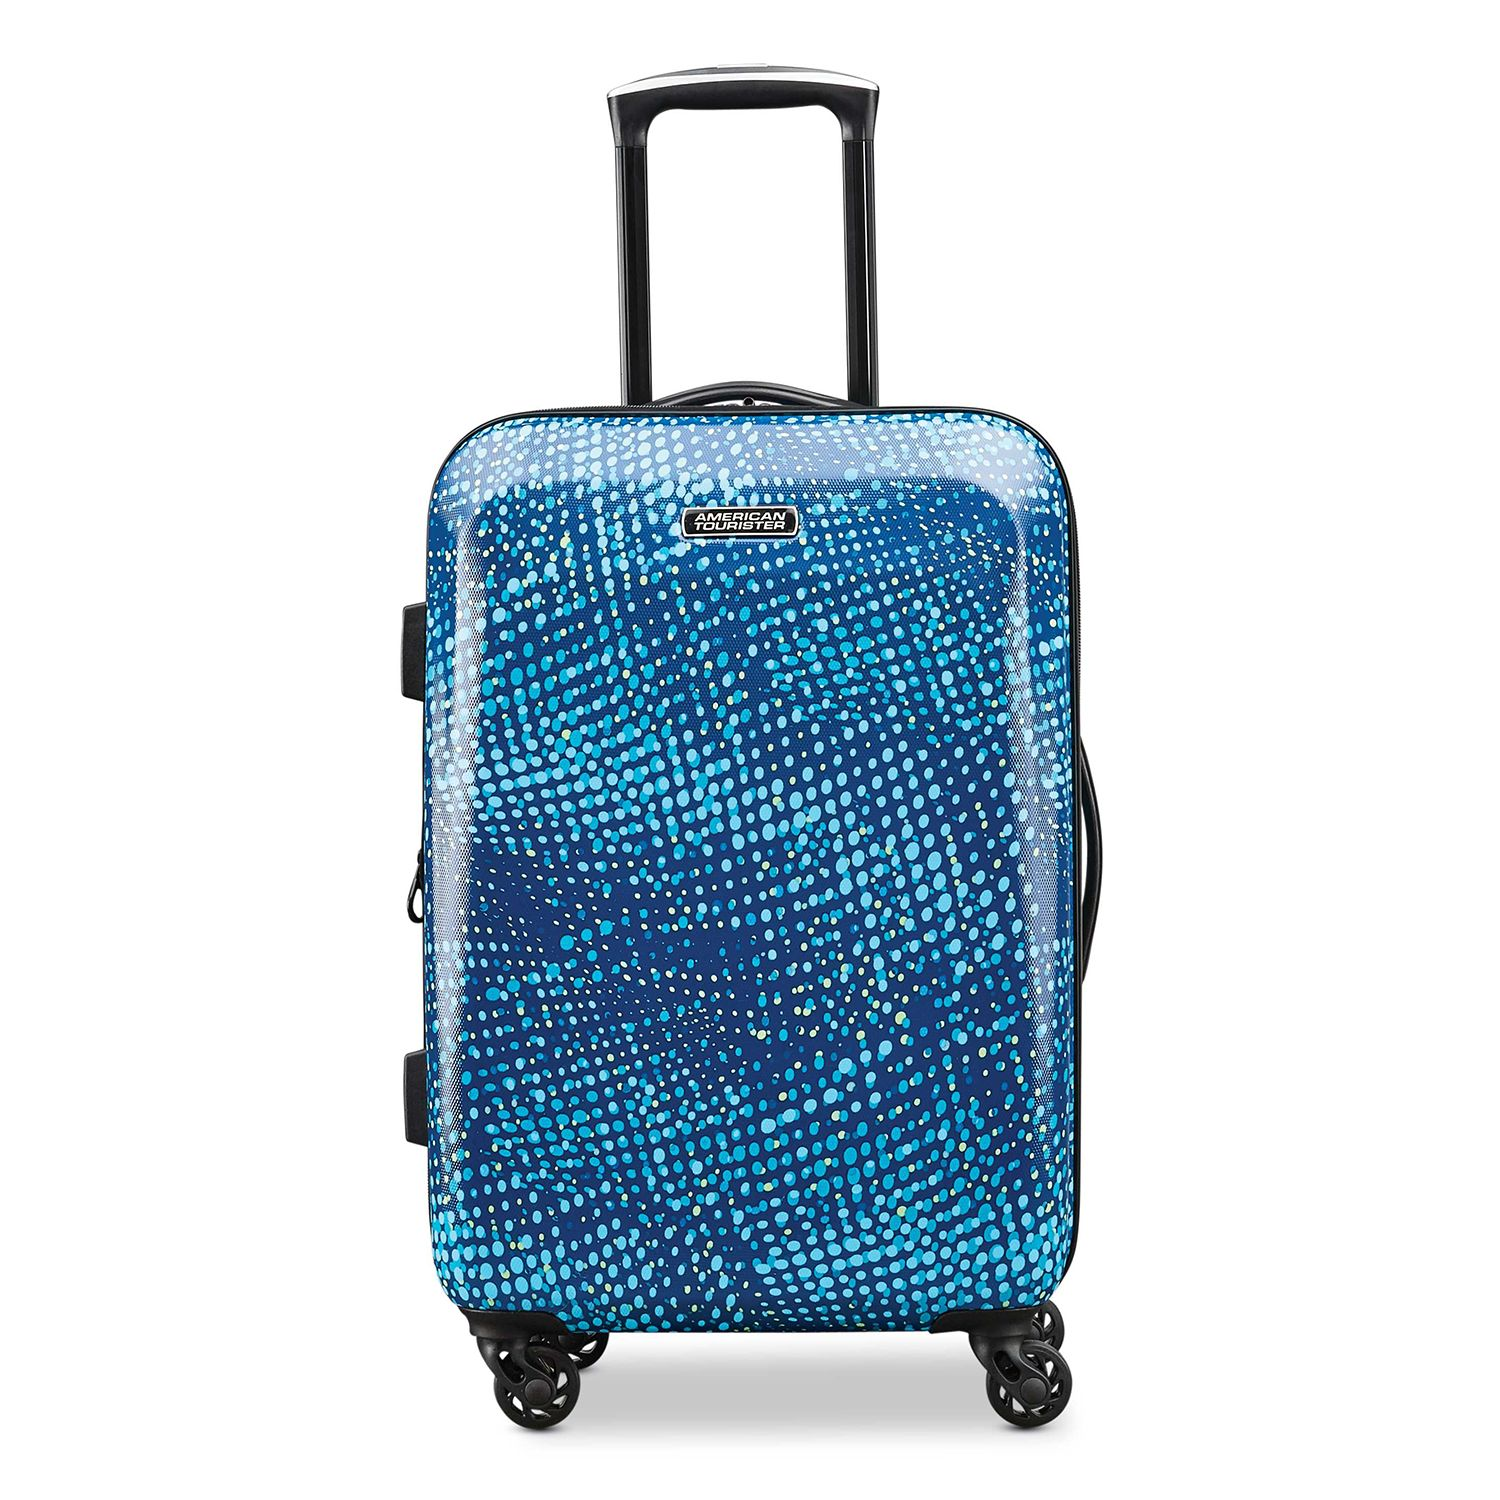 a6e3f0b6cd0c Luggage & Suitcases | Kohl's